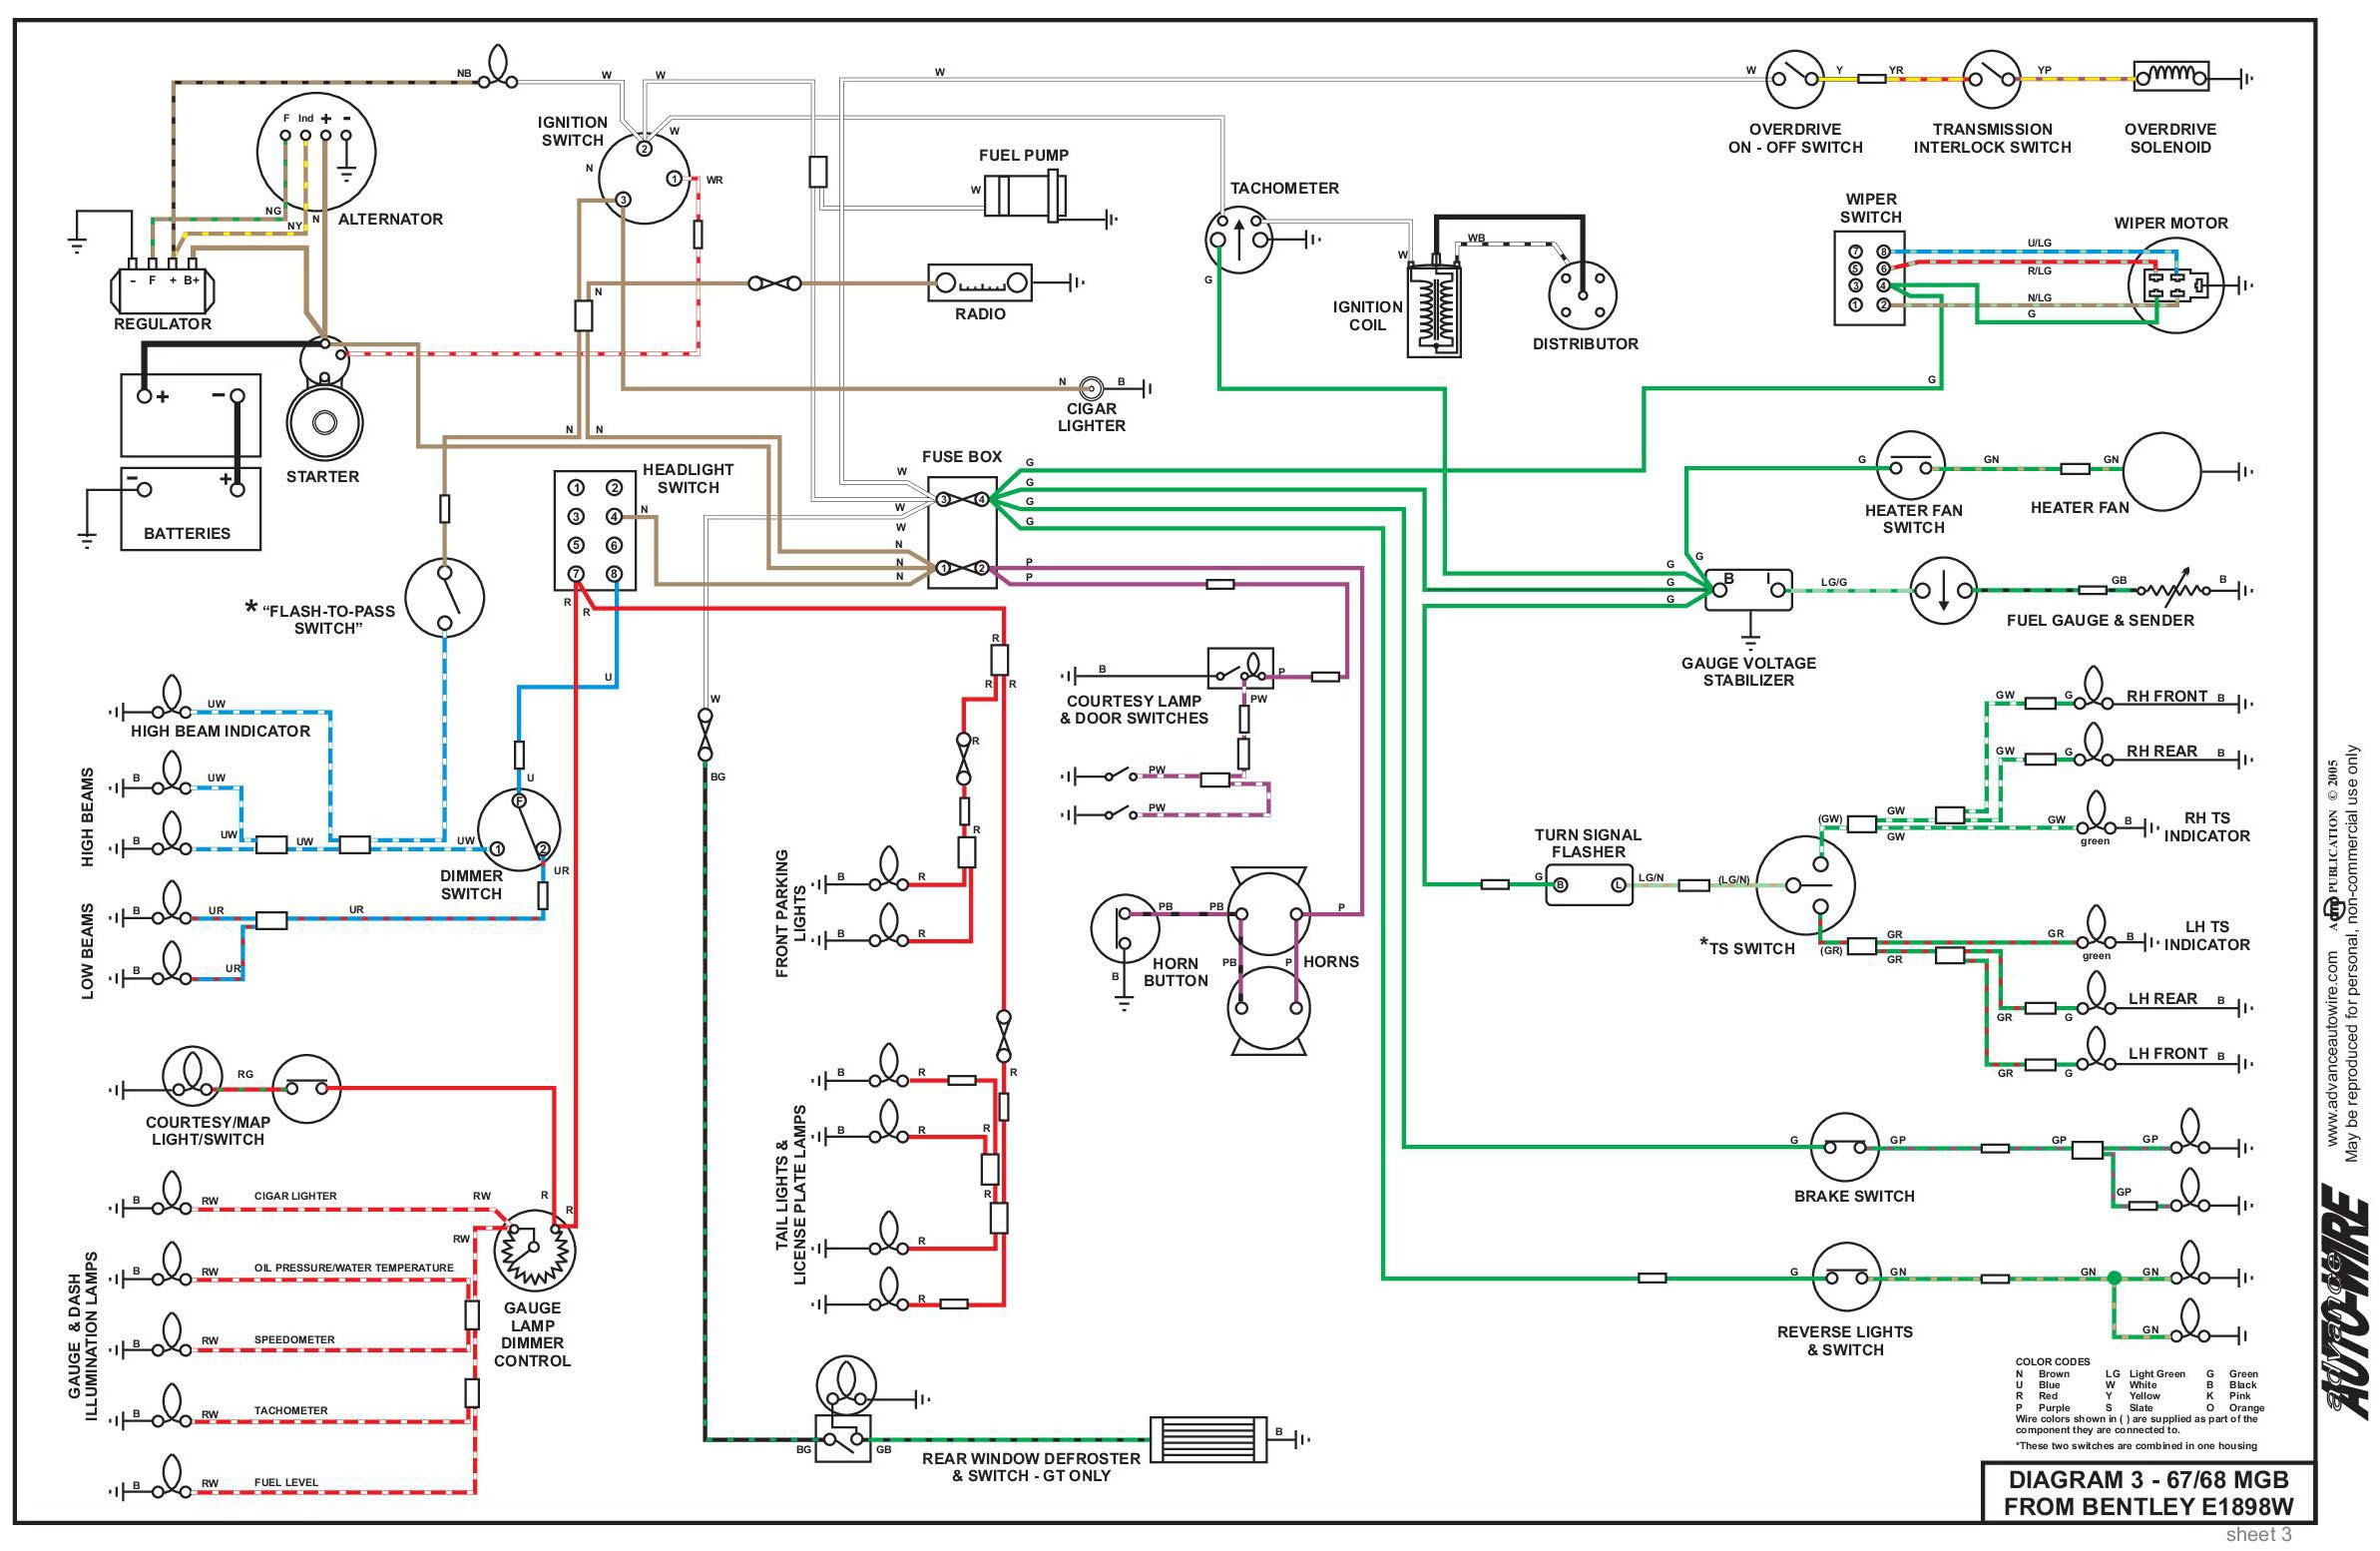 3 Prong Flasher Wiring Diagram Electrical System Of 3 Prong Flasher Wiring Diagram